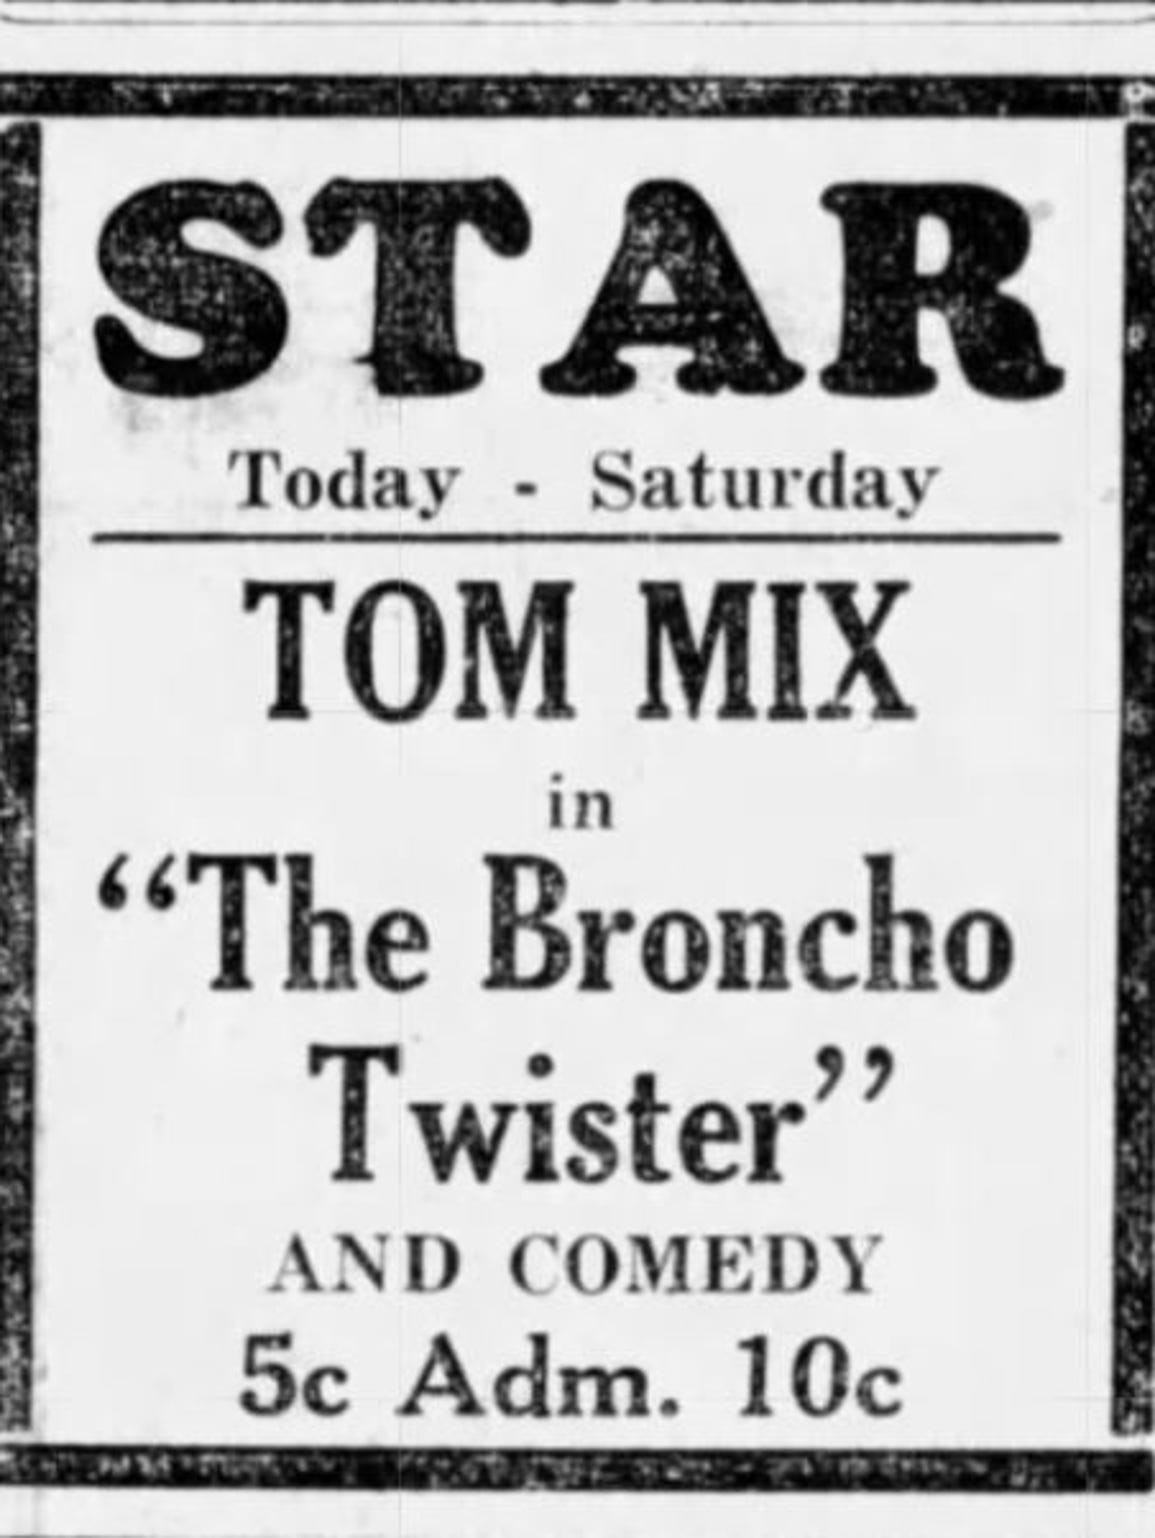 """Broncho, spelled with an """"H,"""" was common at the time"""